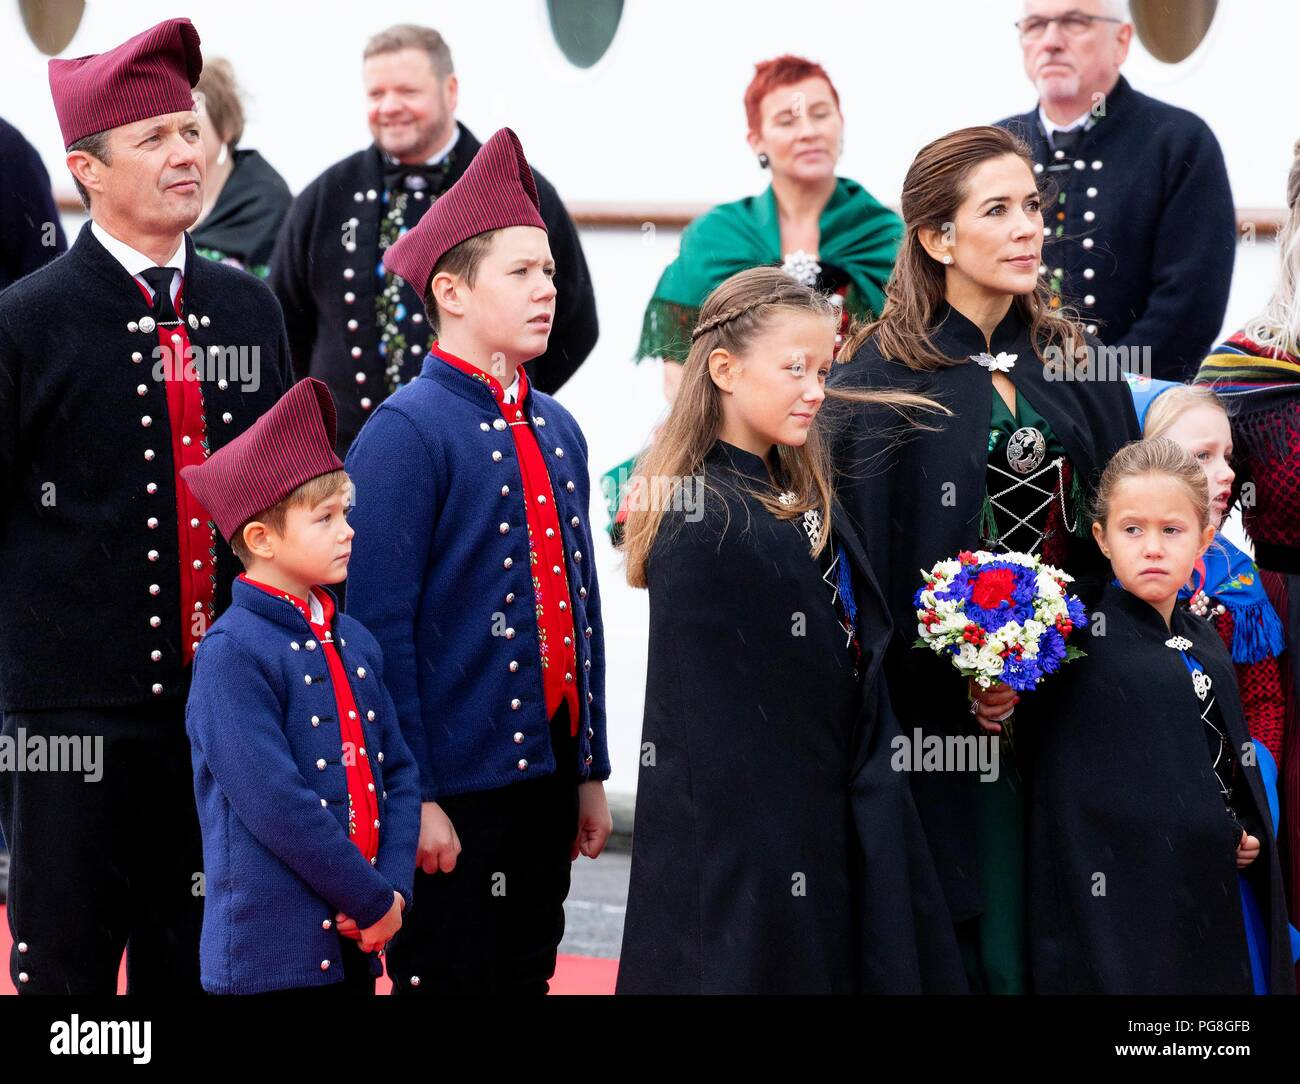 Faroe Islands. 24th Aug, 2018. Crown Prince Frederik, Crown Princess Mary, Prince Christian, Princess Isabella, Prince Vincent and Princess Josehpine of Denmark arrive with the The Royal Ship, HDMY Dannebrog at the harbour of Klaksvík, on August 24, 2018, on the 2nd of the 4 days visit to the Faroe Islands Photo : Albert Nieboer/ Netherlands OUT/Point de Vue OUT | Credit: dpa picture alliance/Alamy Live News - Stock Image